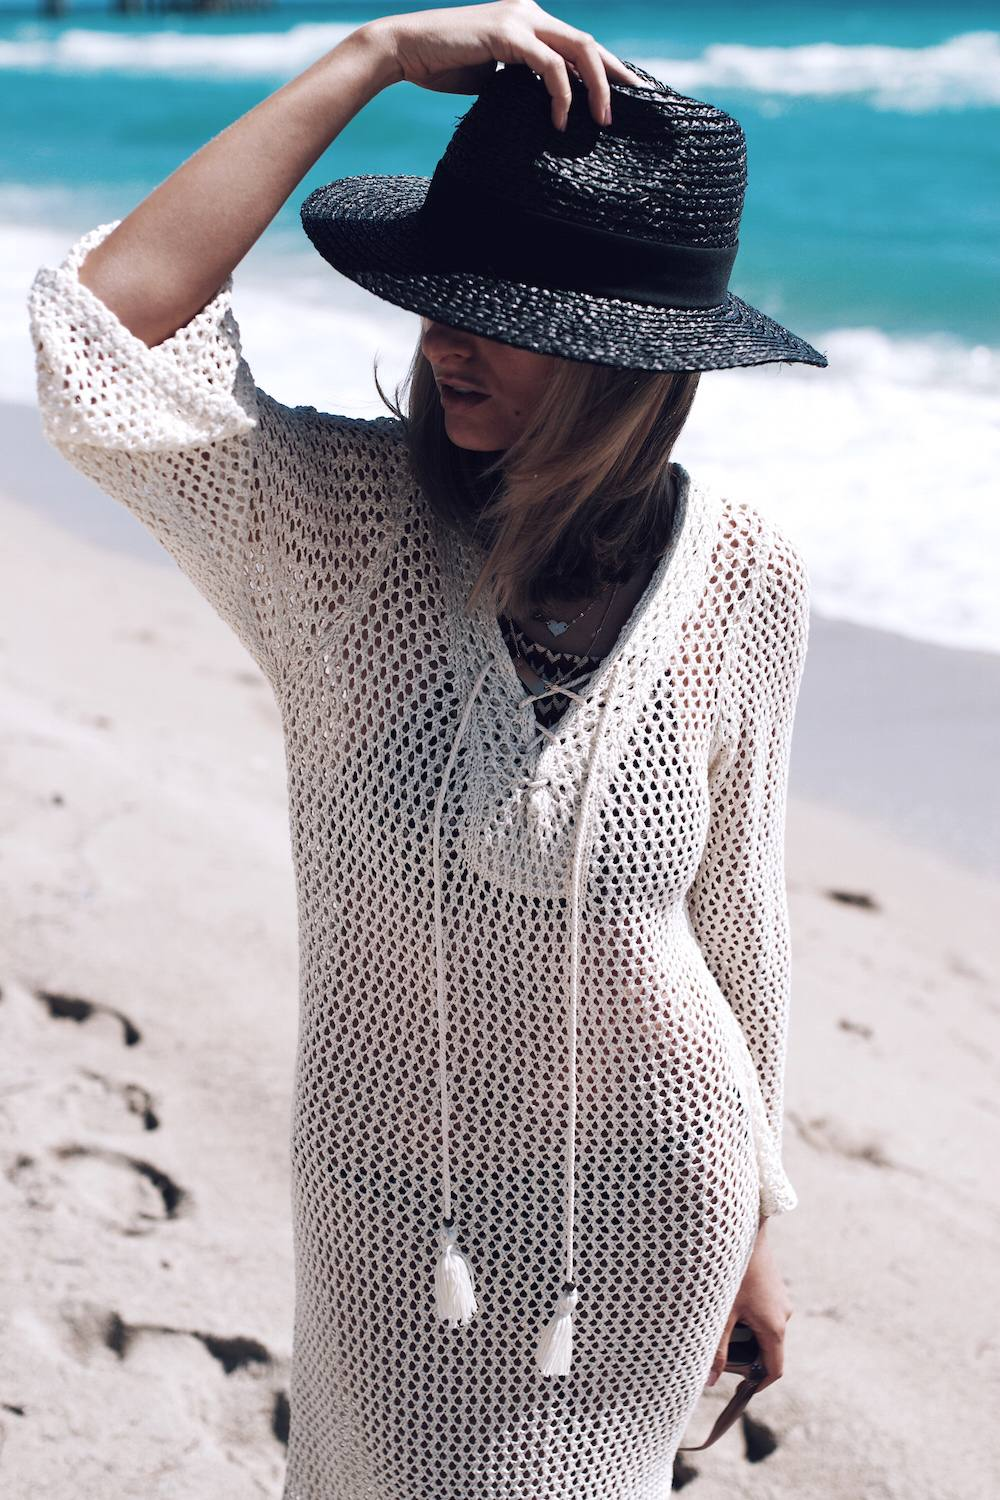 Beach outfit inspiration 09